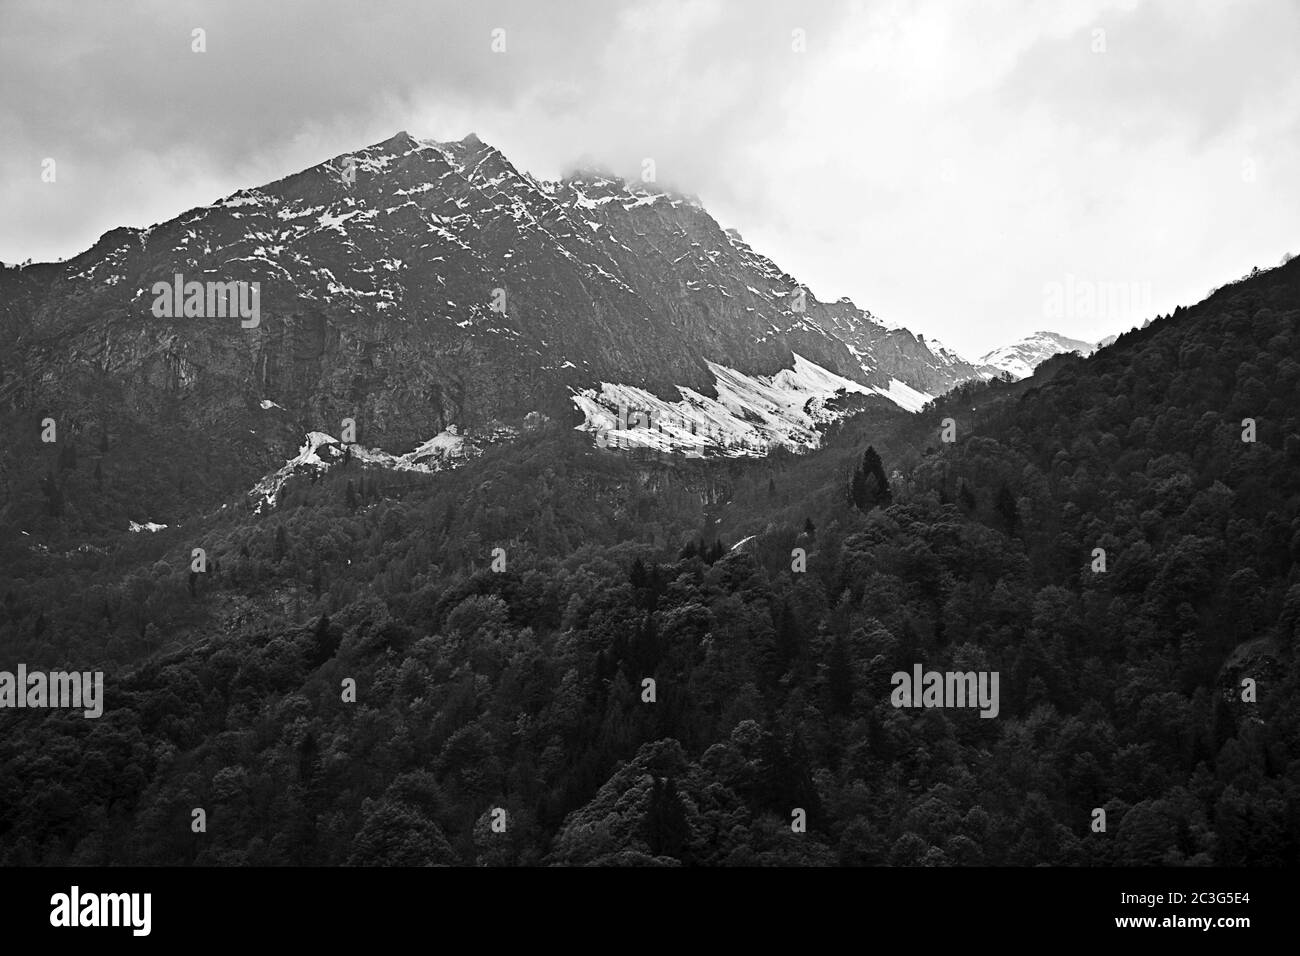 A Grayscale Shot Of A Beautiful Landscape With A Forest And High Rocky Mountains Stock Photo Alamy